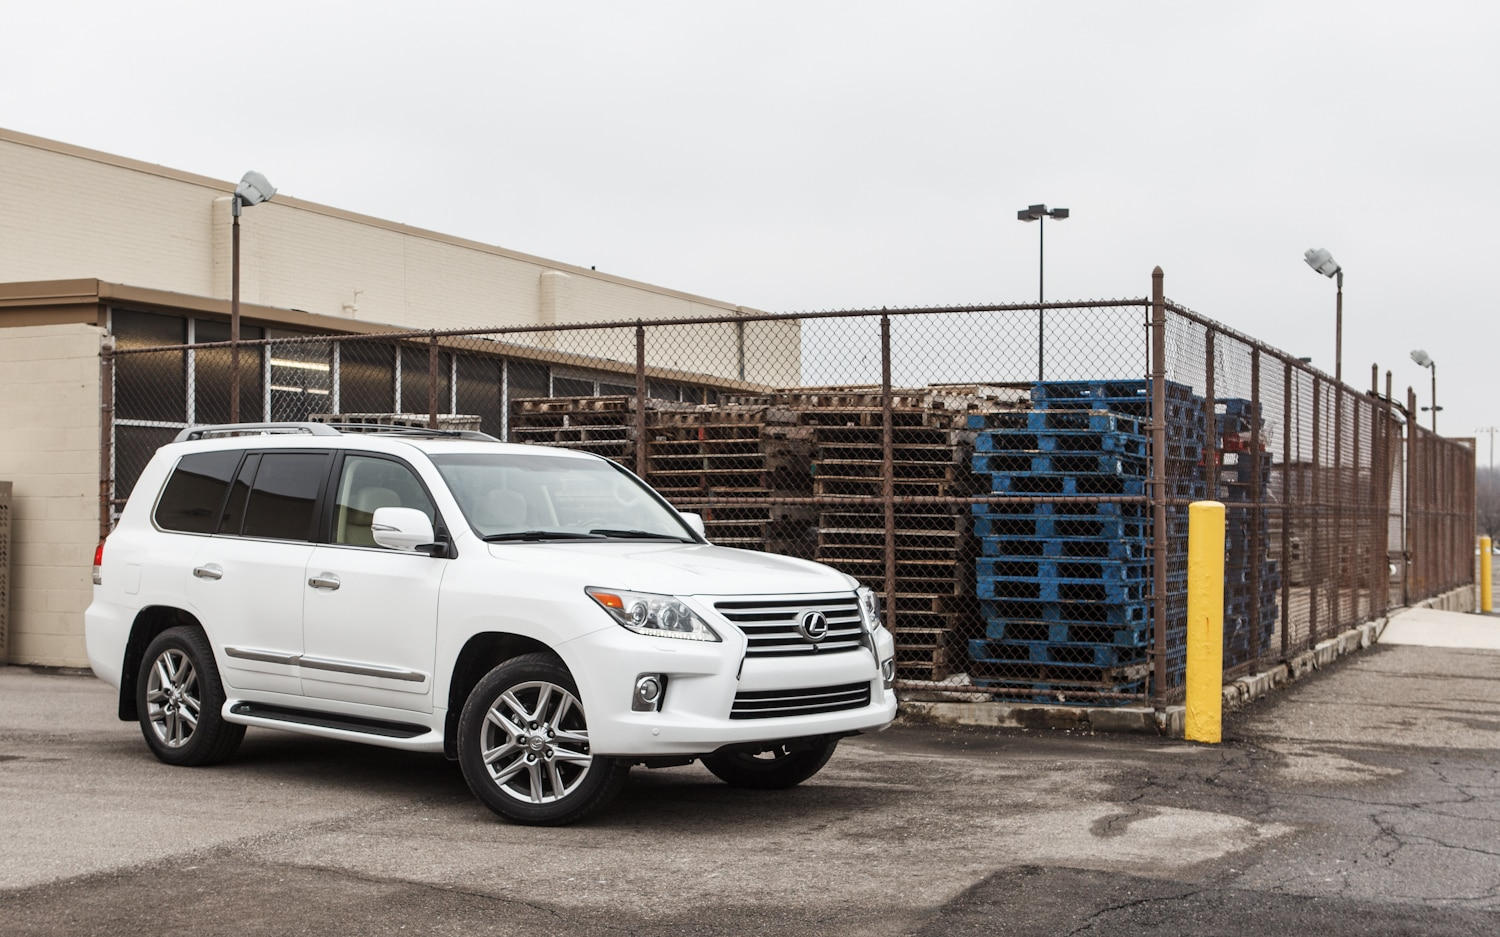 2013 Lexus LX570 Front Right Side View 31